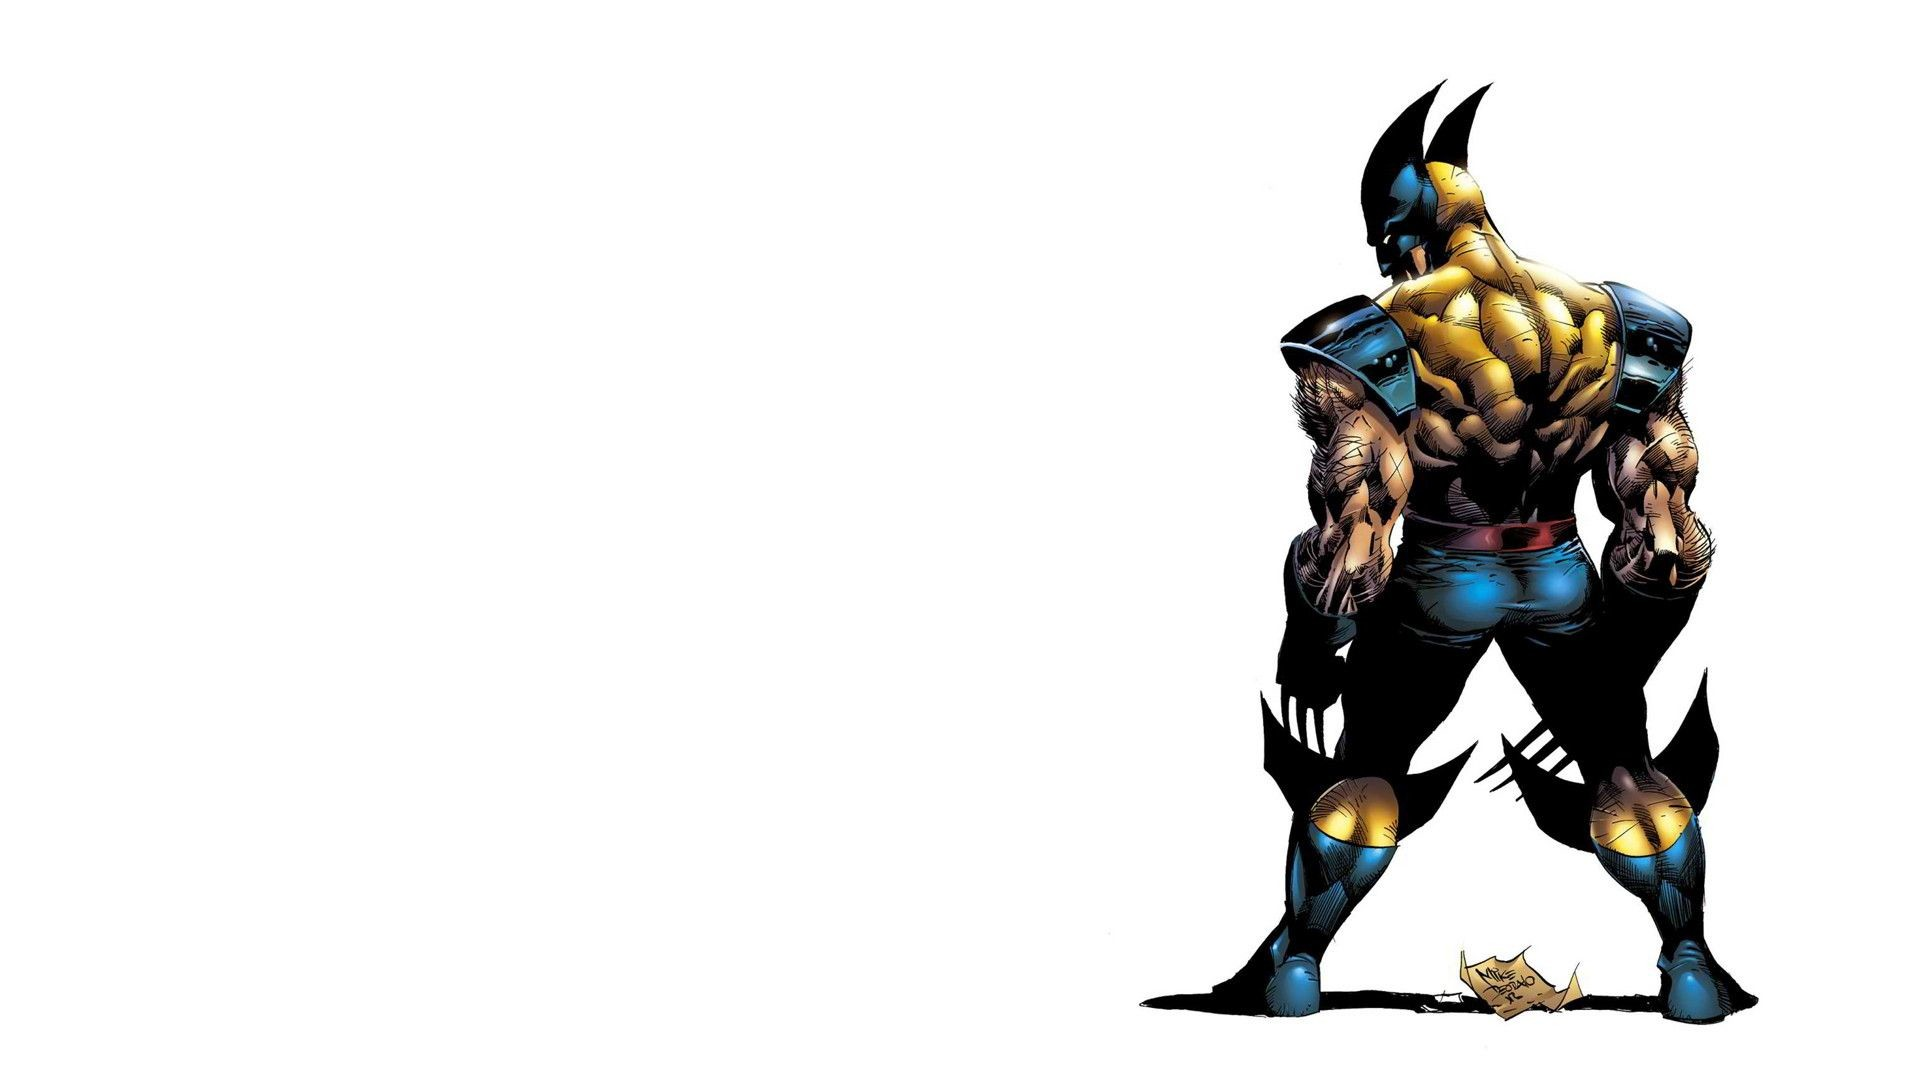 1920x1080 Wolverine Wallpapers HD - Wallpaper Cave